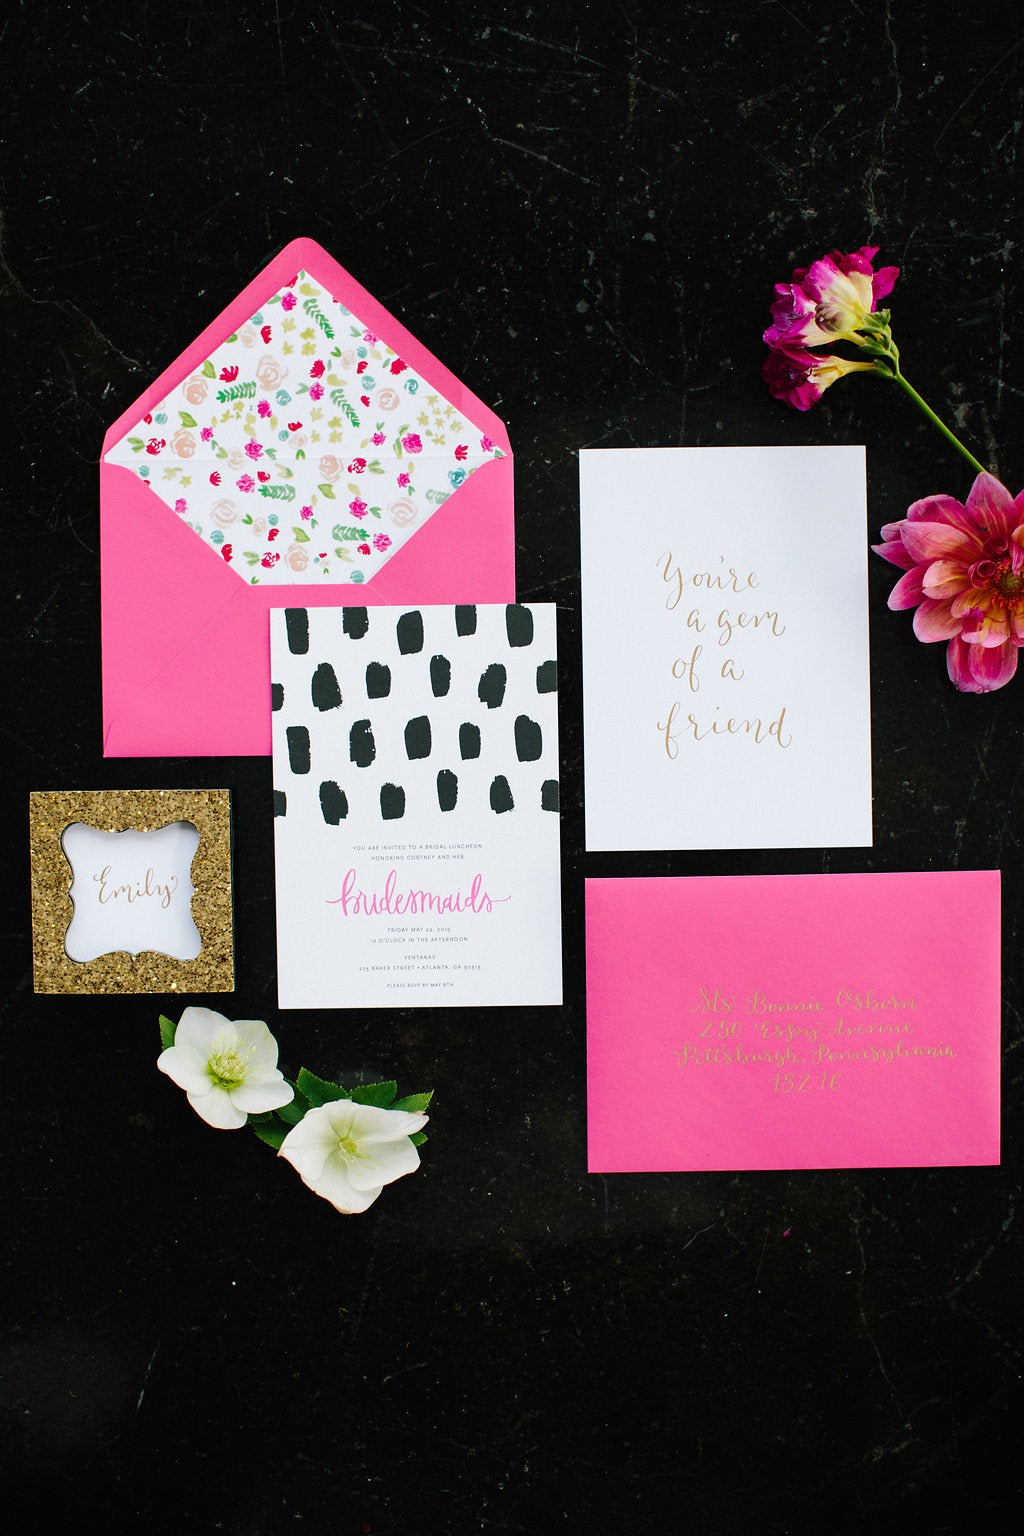 Gem Inspired Bridesmaid Luncheon Stationery Suite by Green Tie Studio - Lauren Carnes Photography